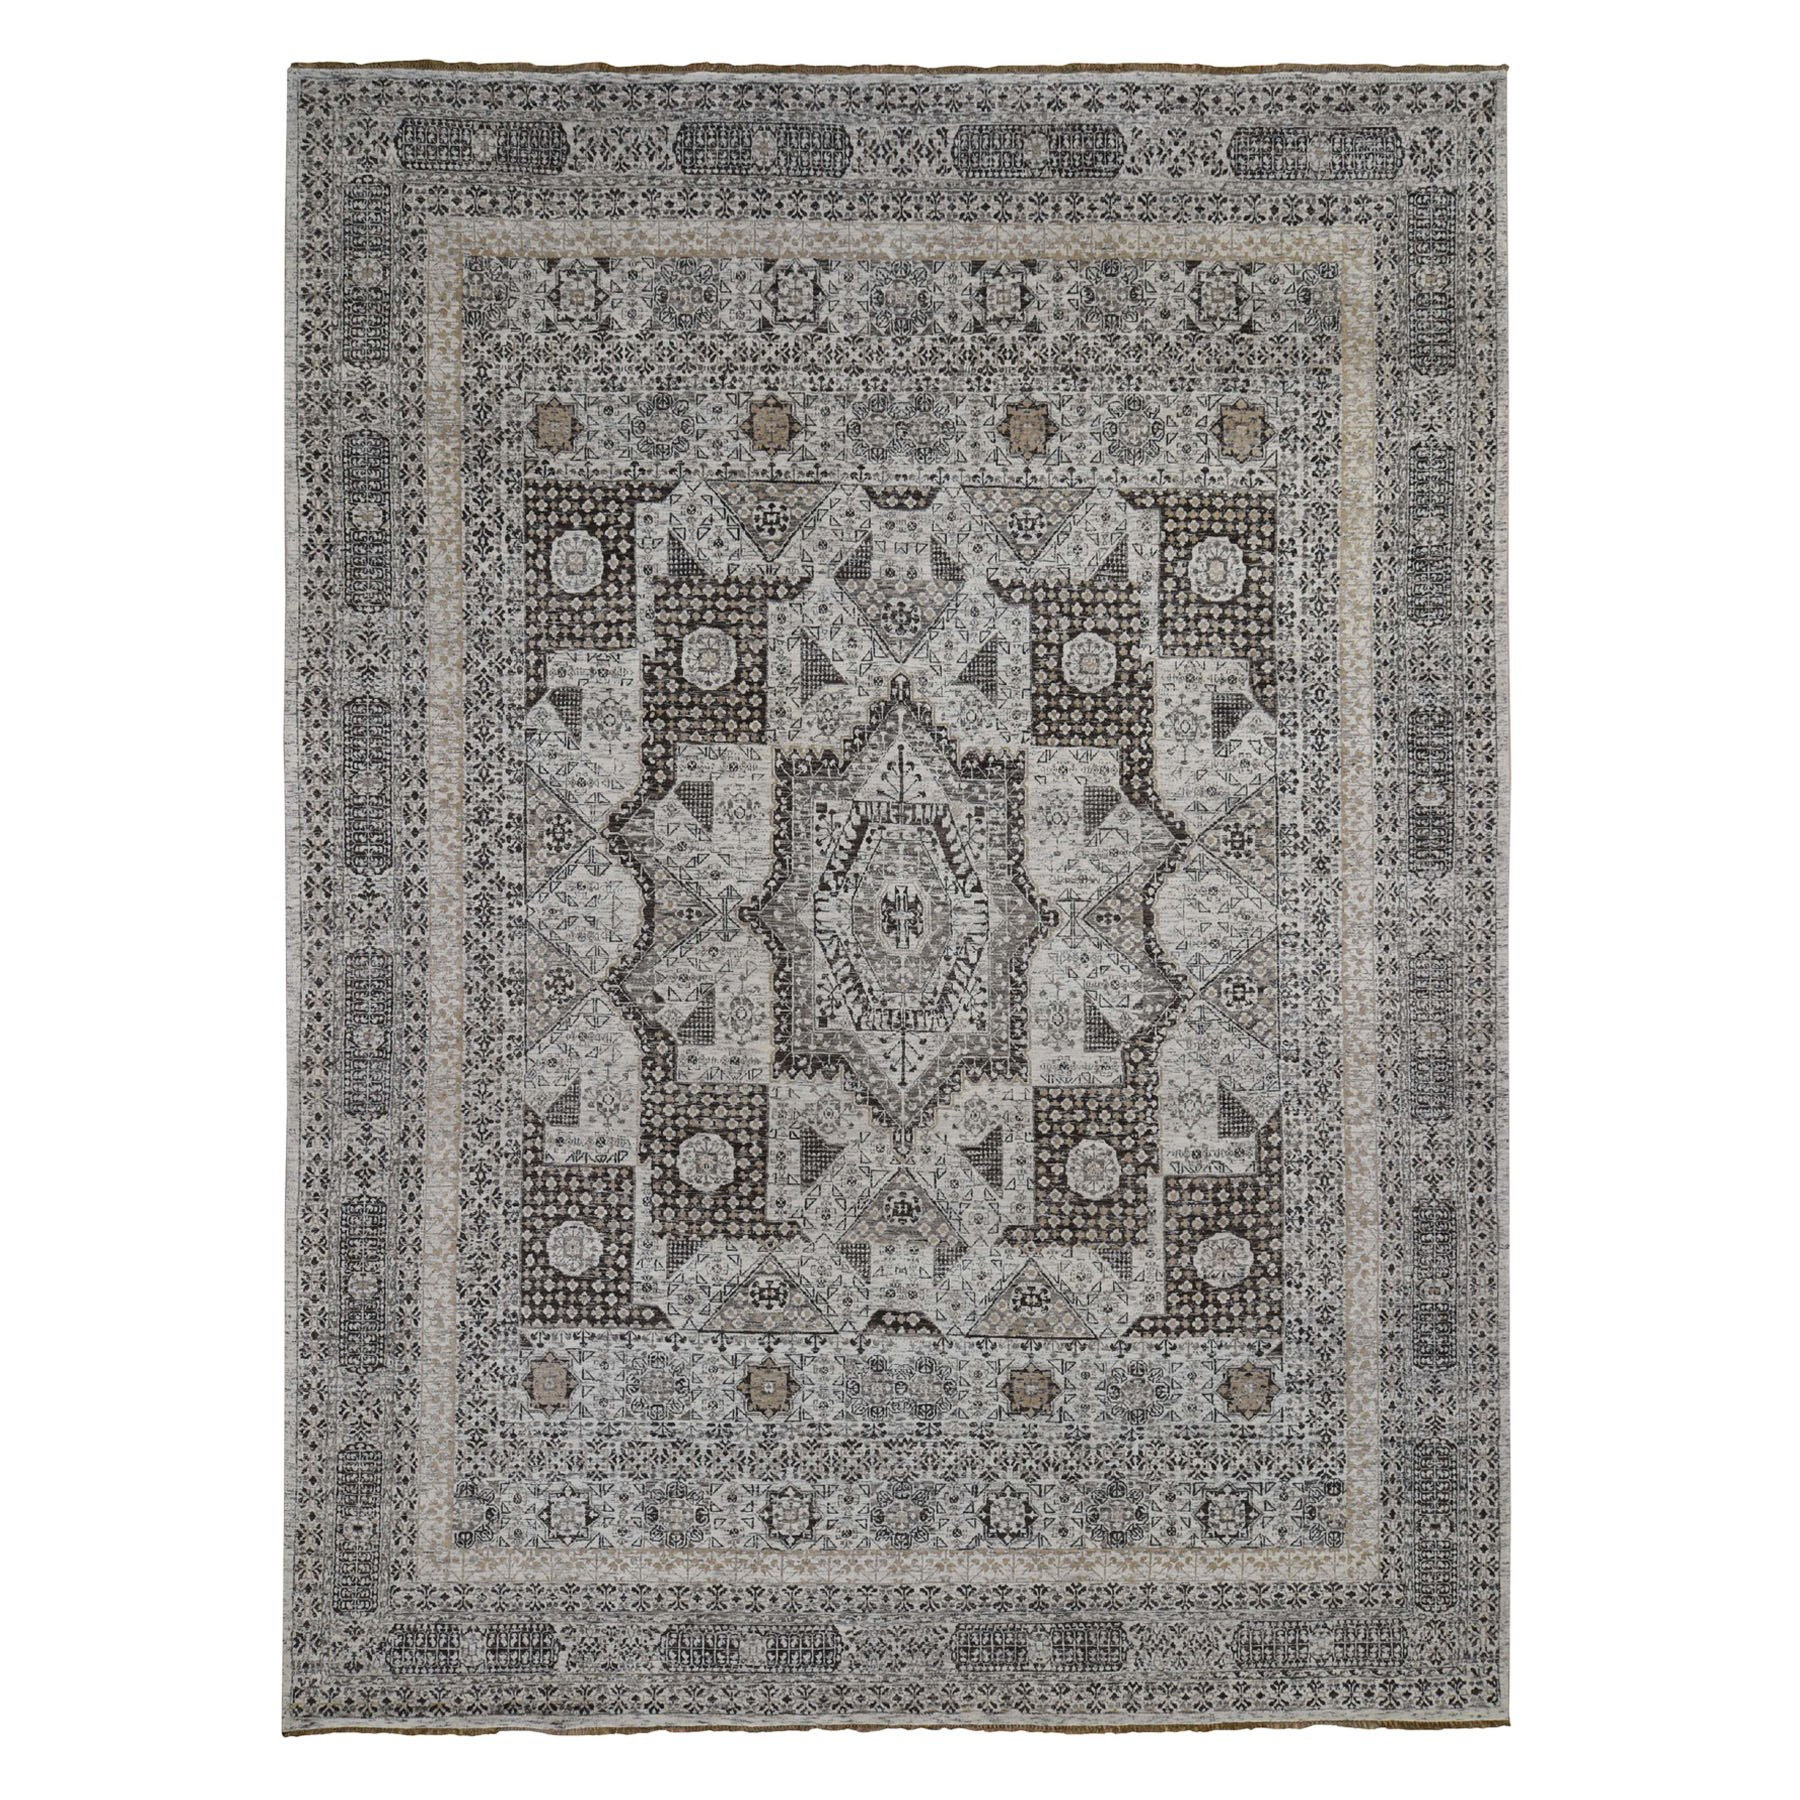 9'x12' Mamluk Design Hand-Knotted Undyed Natural Wool Oriental Rug